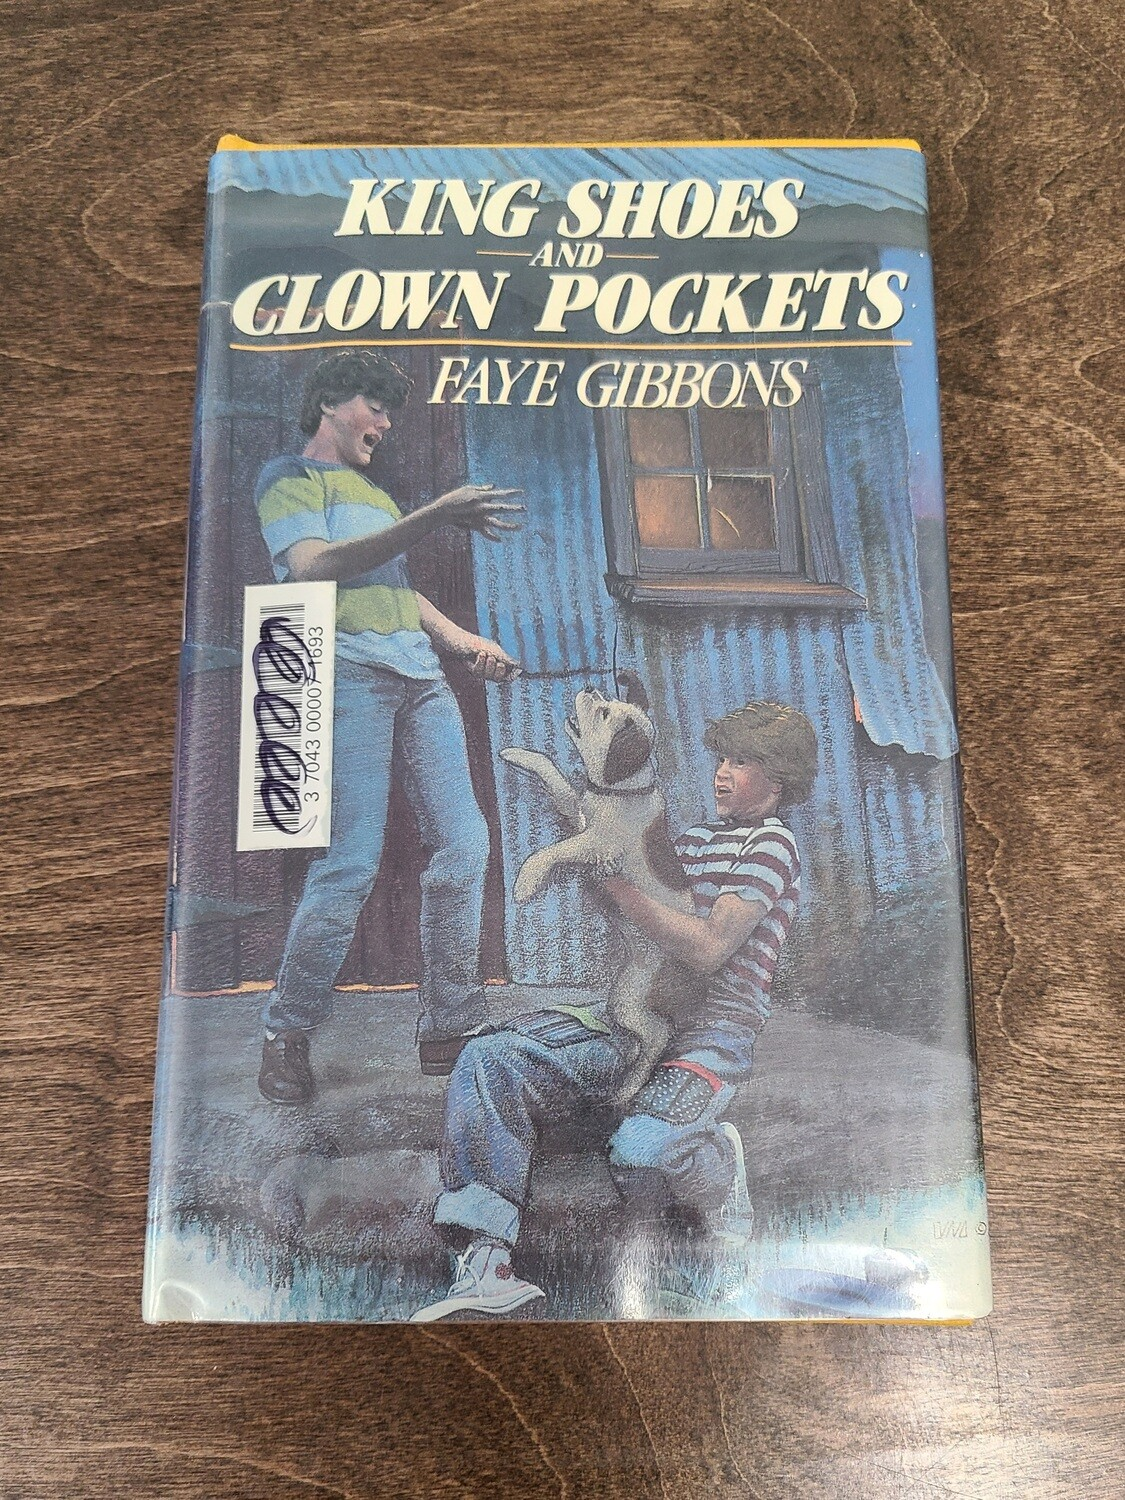 King Shoes and Clown Pockets by Faye Gibbons